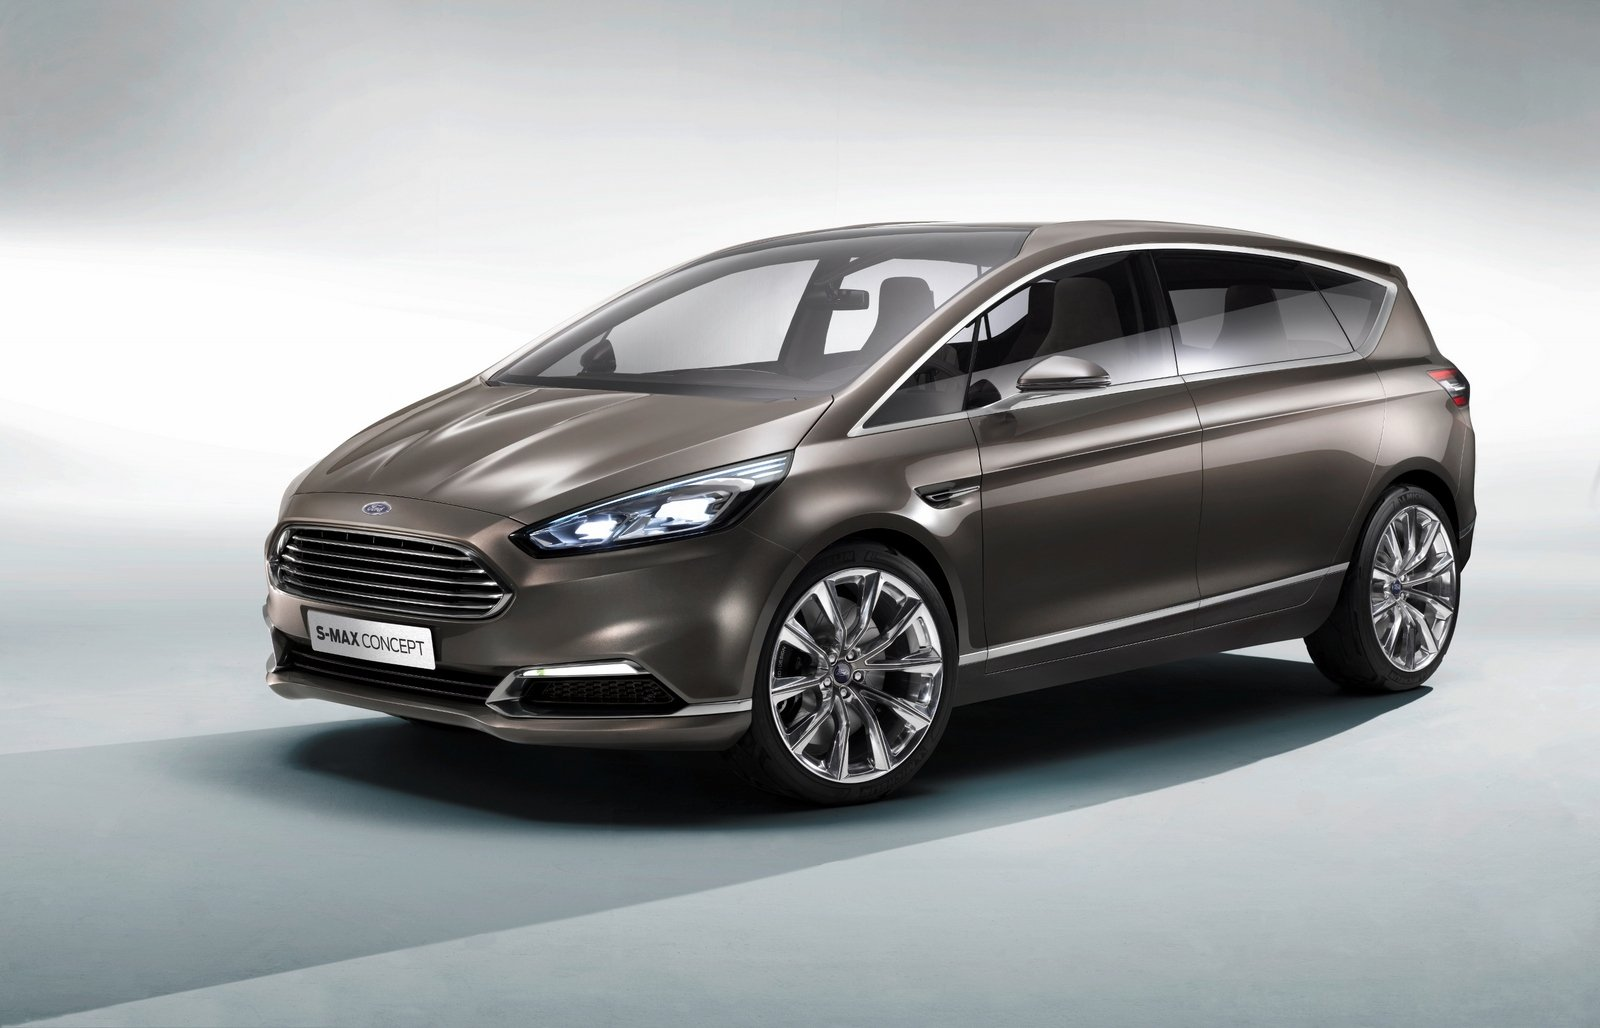 2014 ford s max concept review top speed. Black Bedroom Furniture Sets. Home Design Ideas